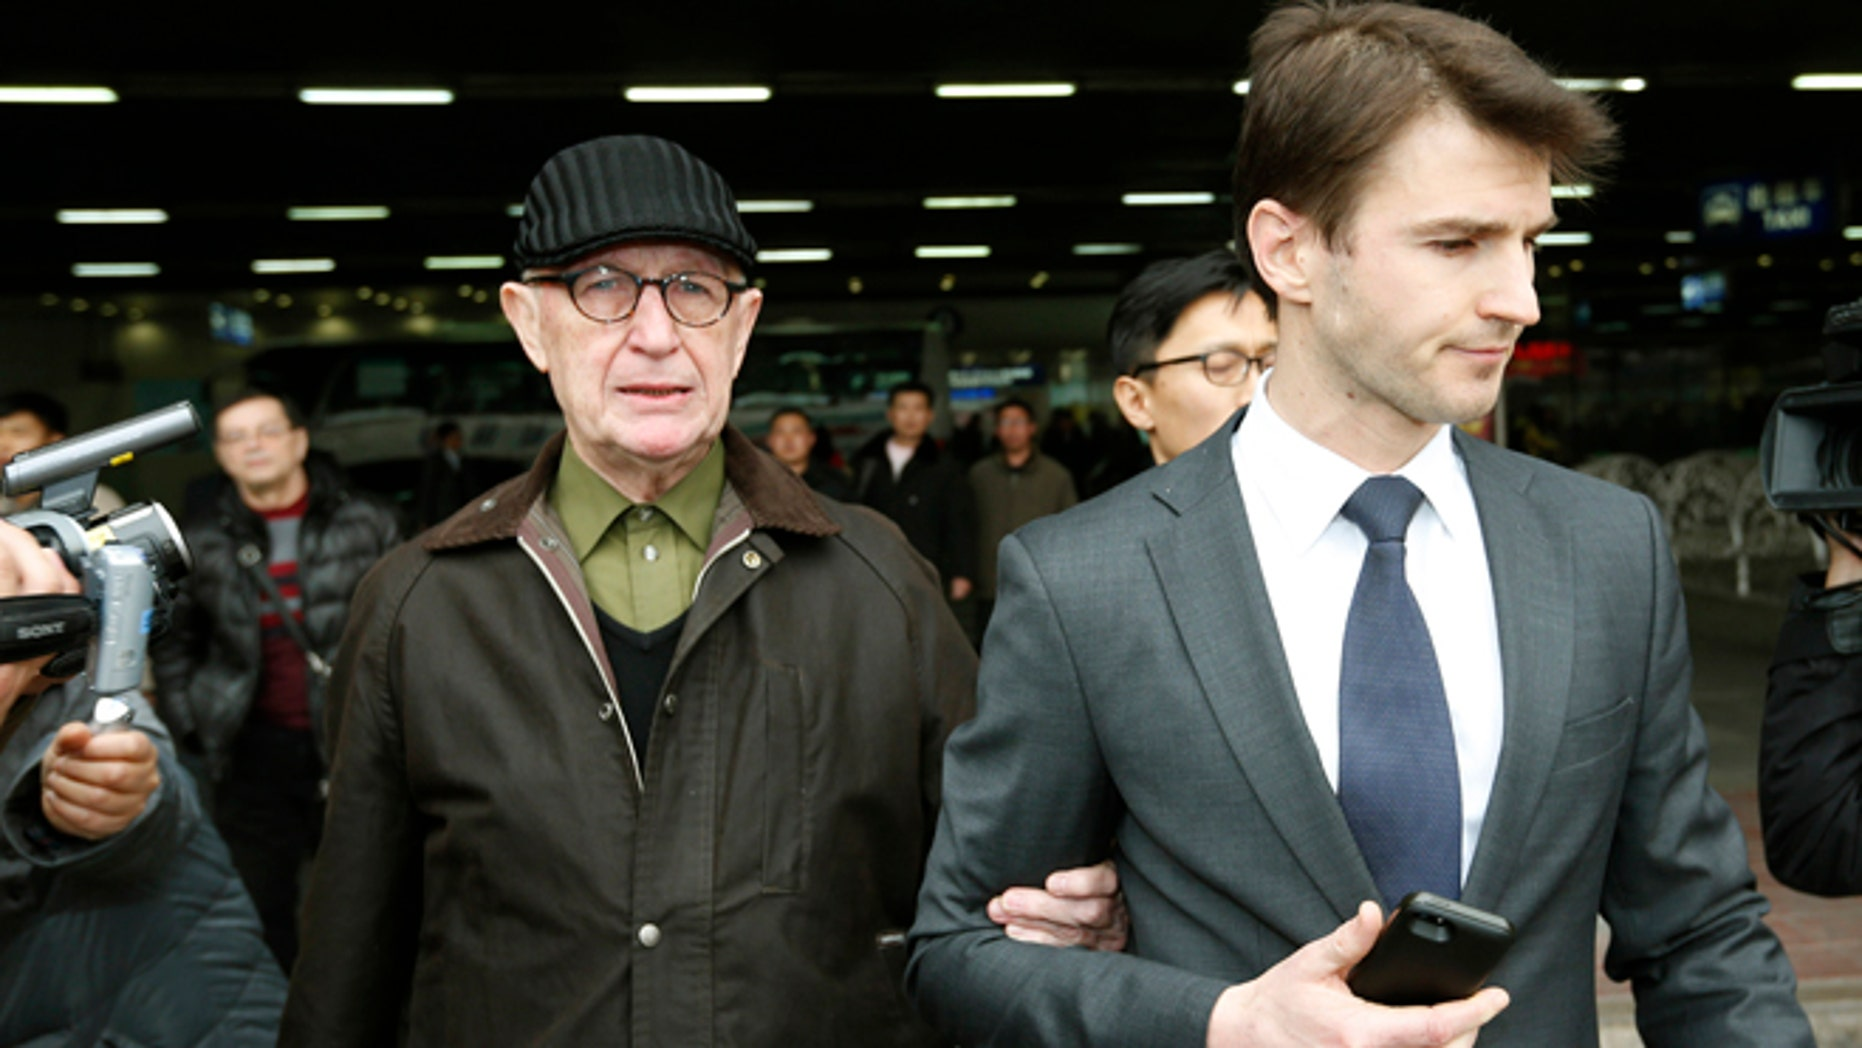 In this March 3, 2014 file photo, Australian missionary John Short, left, walks out from the airport terminal as he arrives at Beijing International Airport in Beijing, China. Short who was detained in North Korea for trying to spread Christianity said Wednesday, March 5, he was interrogated for four hours a day and kept under 24-hour guard during his grueling 13-day investigation.